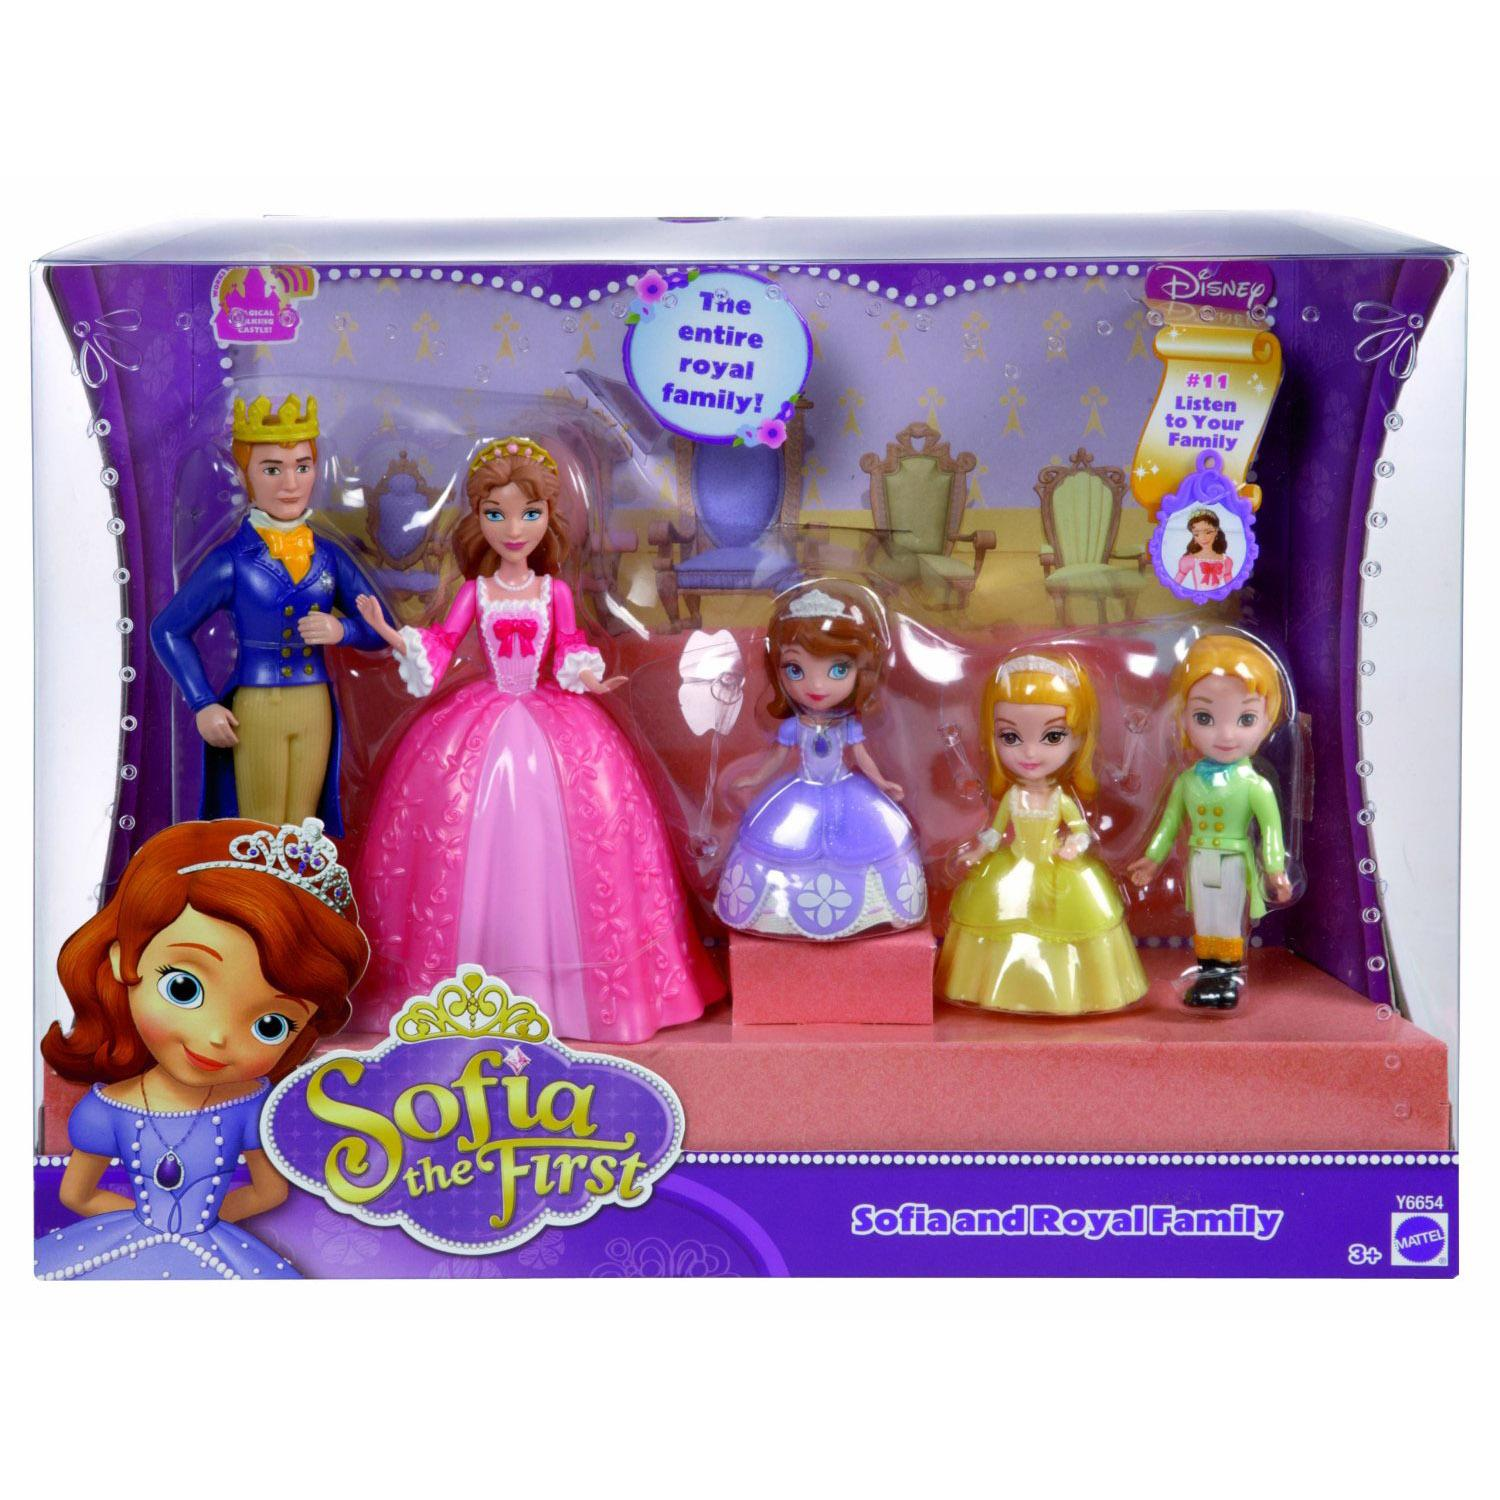 Sofia The First & Royal Family Doll Figure Play set